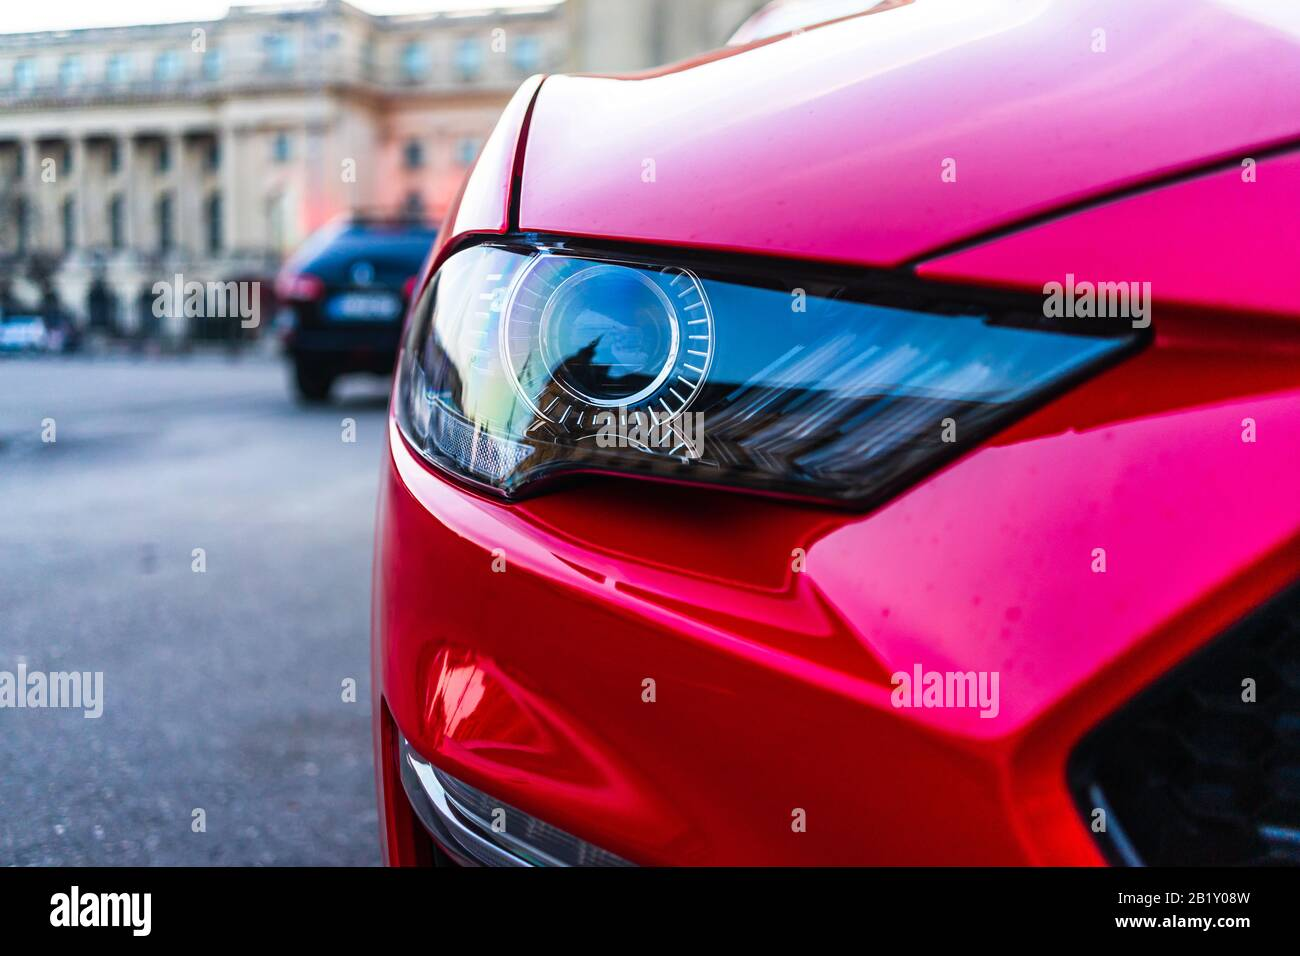 Close Up Photo Of Modern Car Detail Of Headlight Headlight Car Projector Led Of A Modern Luxury Technology And Auto Detail Stock Photo Alamy